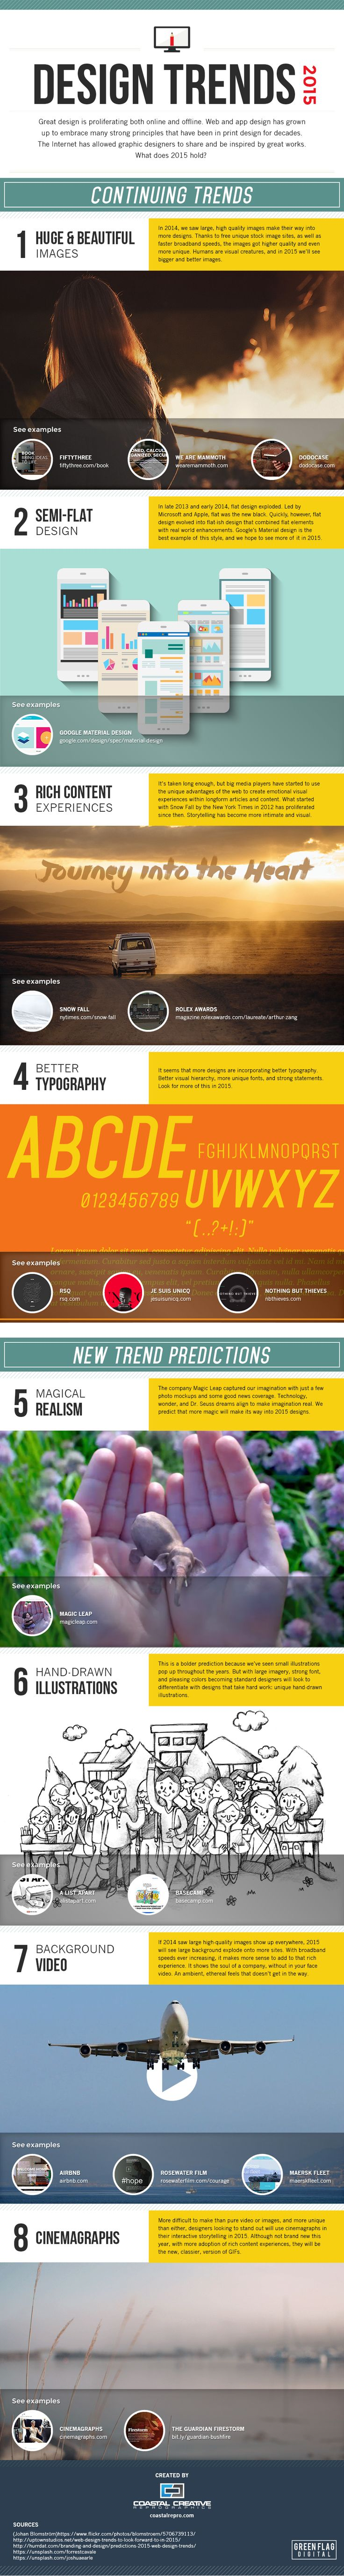 Design Trends 2015 Infographic Published December 28, 2014 Design is always changing and evolving. 2014 was no different as we saw a continuation of some positive trends such as larger photography and better typography, and a hint at some of the future trends to come in 2015. Pure flat design became a little more …